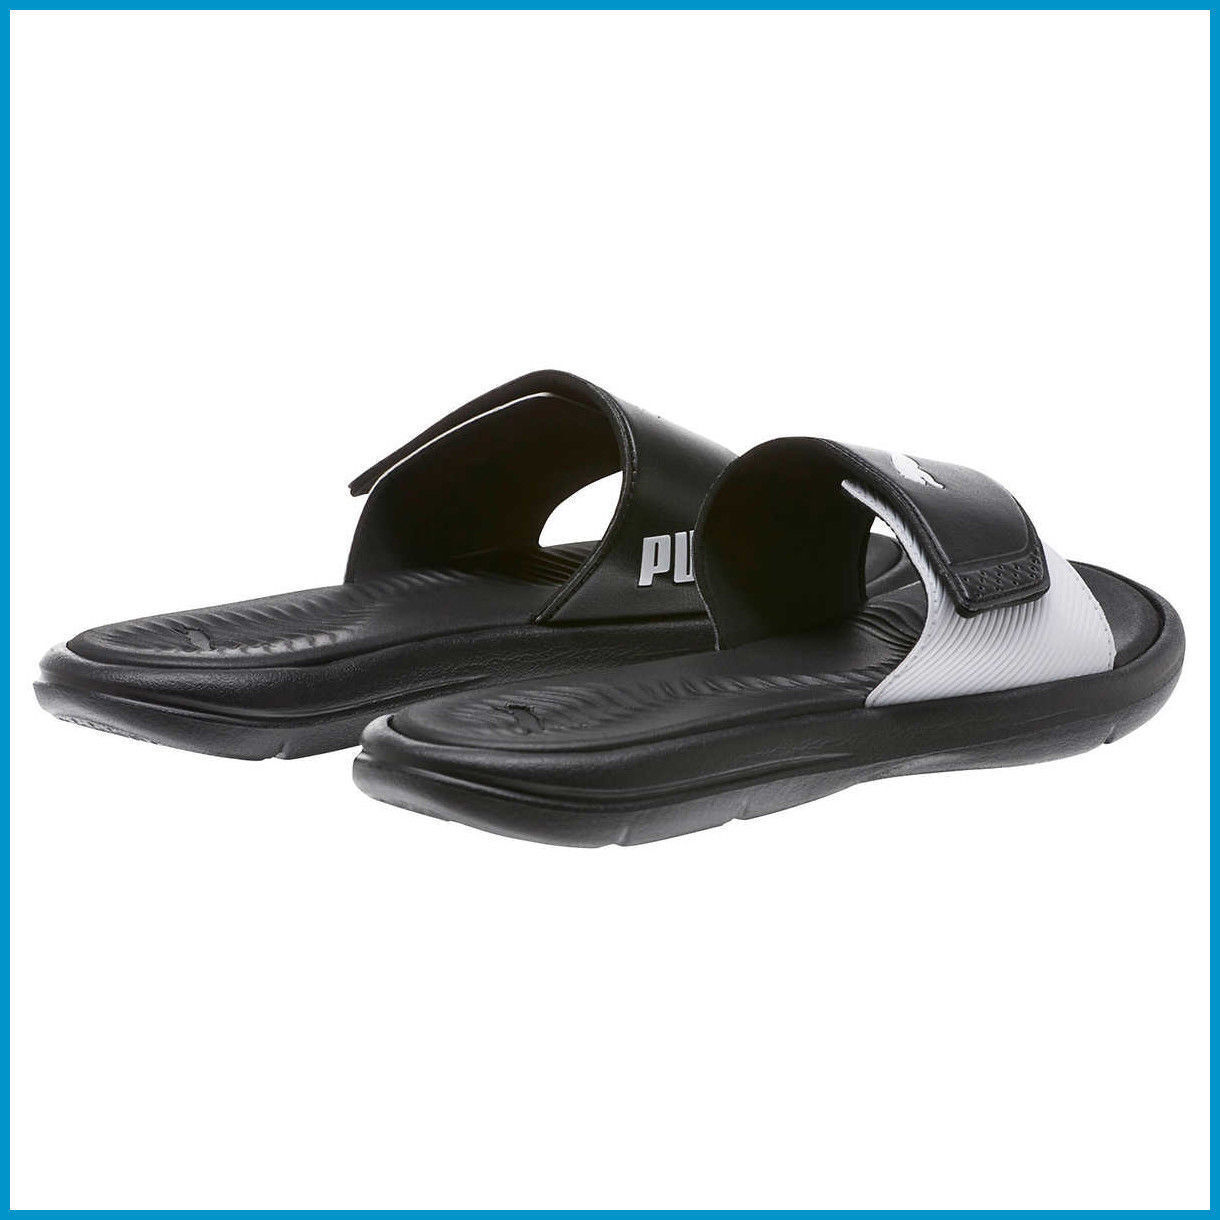 NEW - Puma Women's Surfcat Black Slide Slides Slip on Black Surfcat Sandals - size 7 884e9d